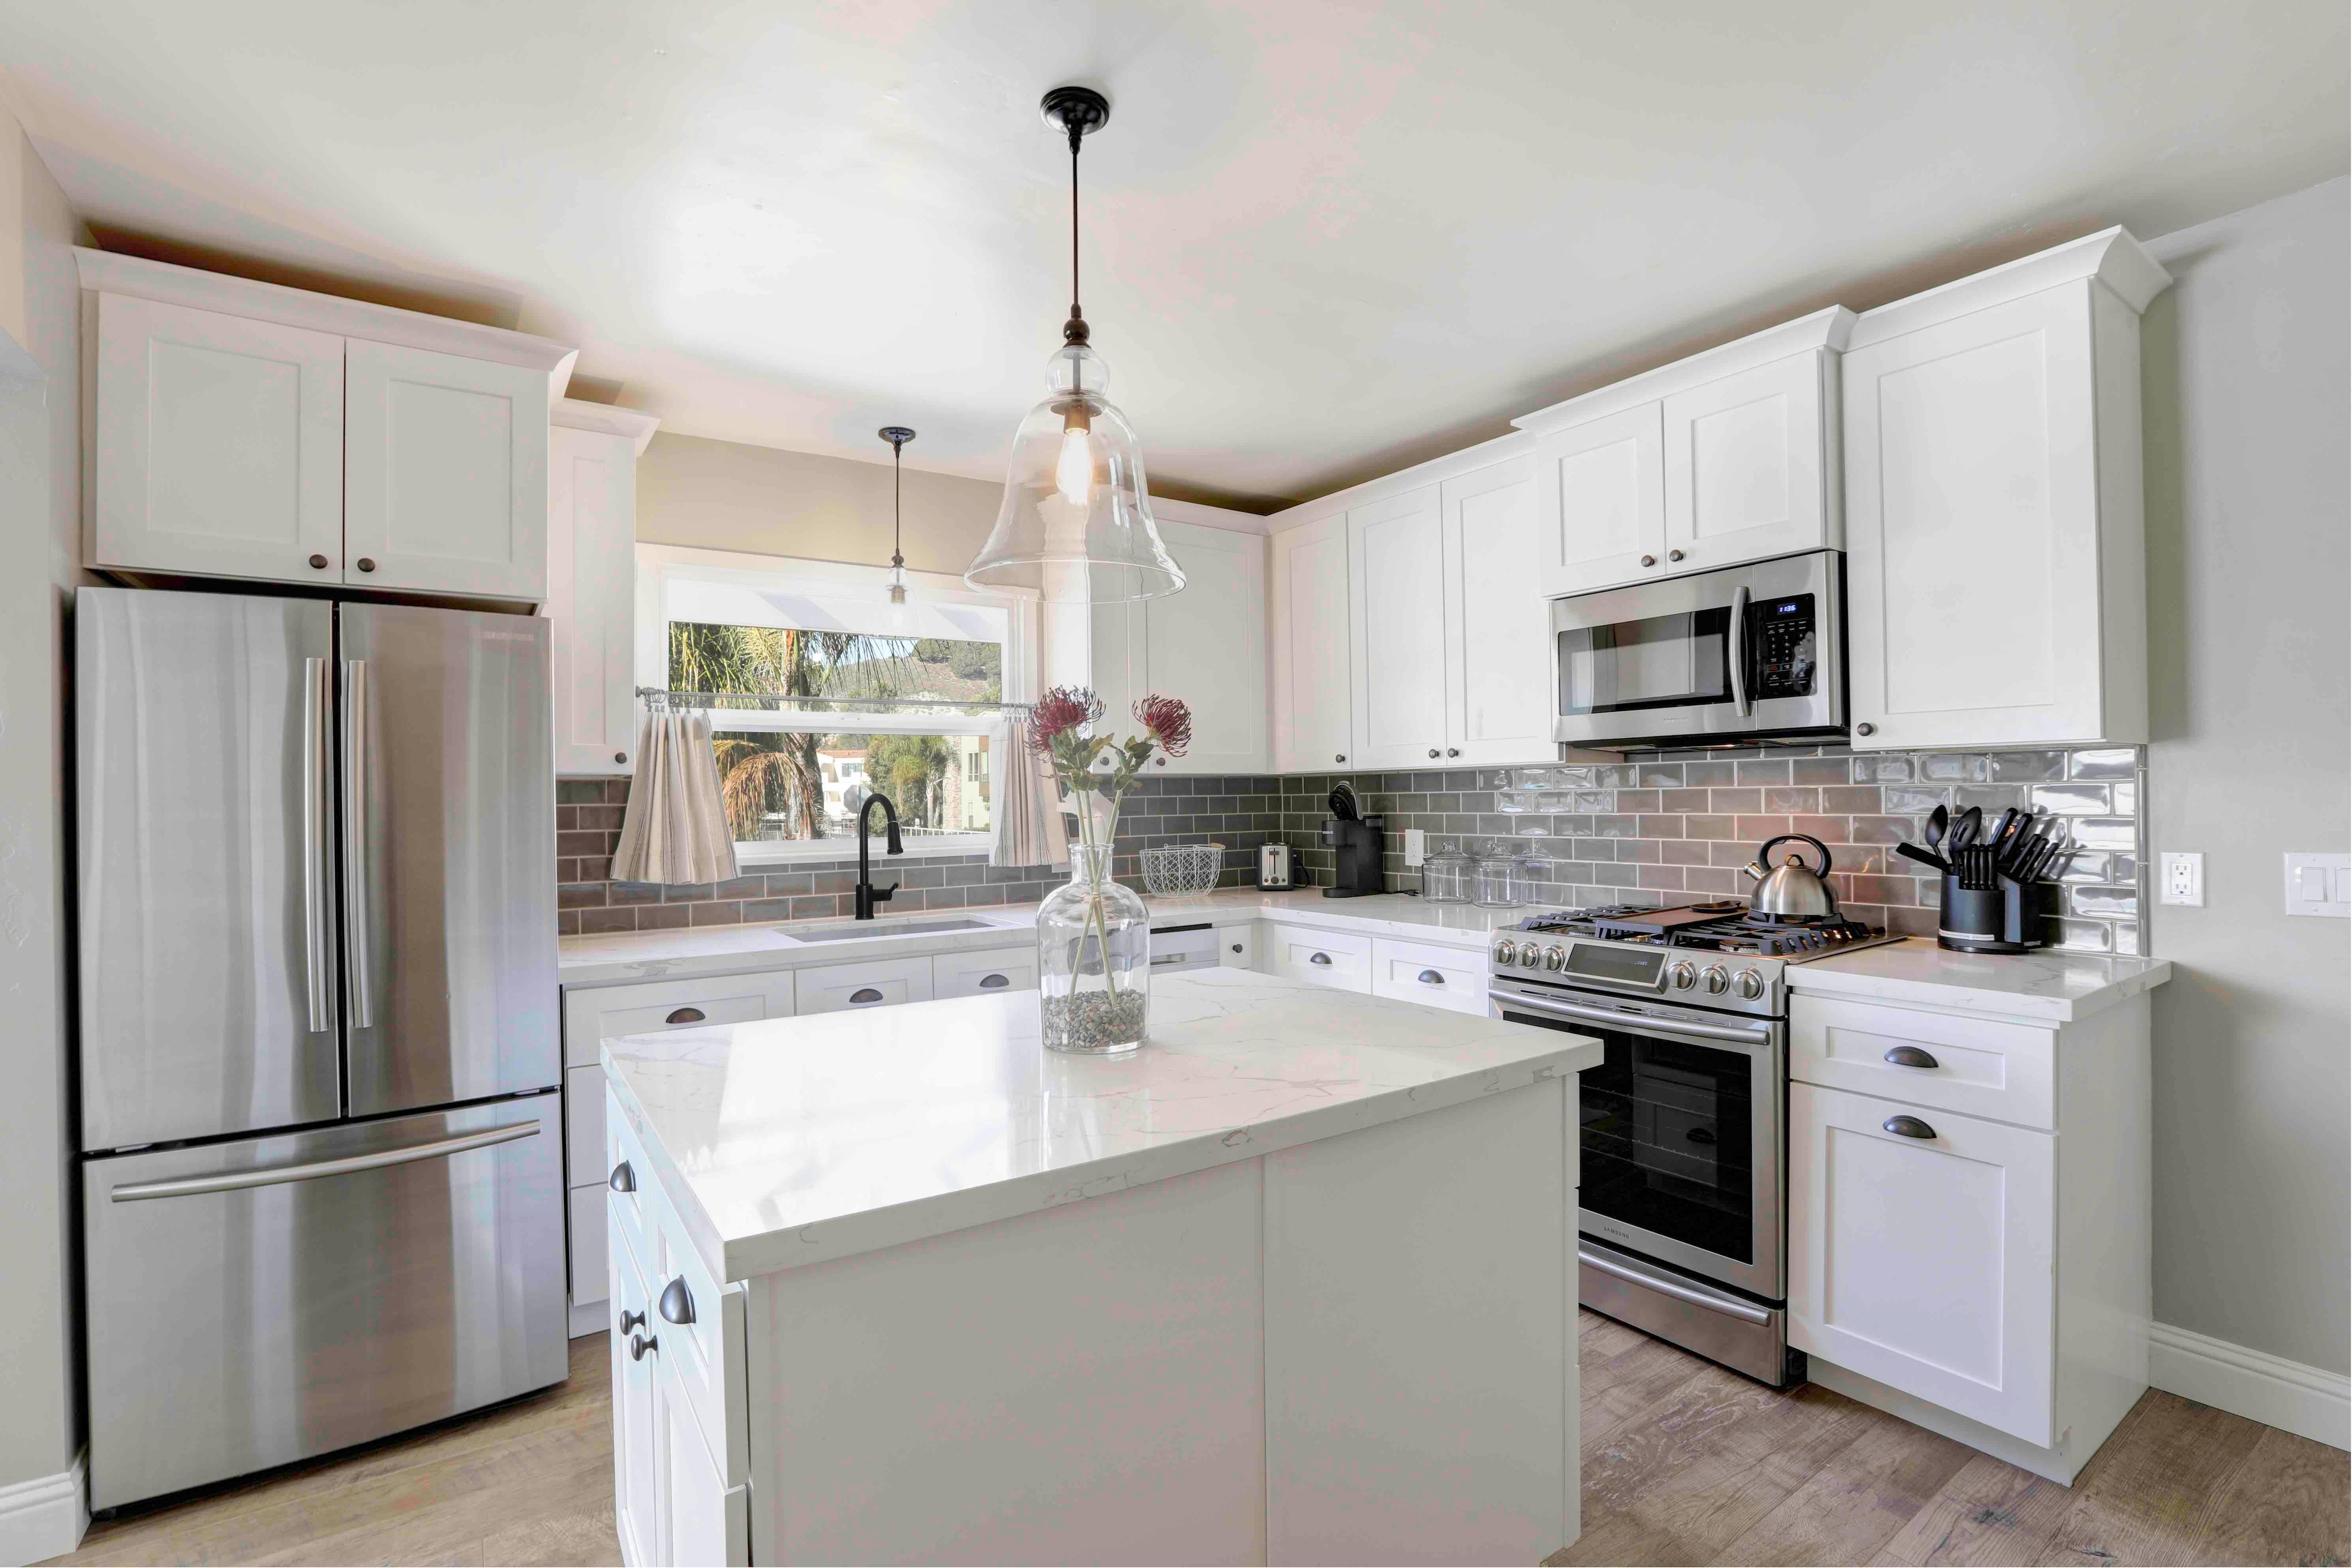 Remodeled cottage. The kitchen has chef grade appliances.